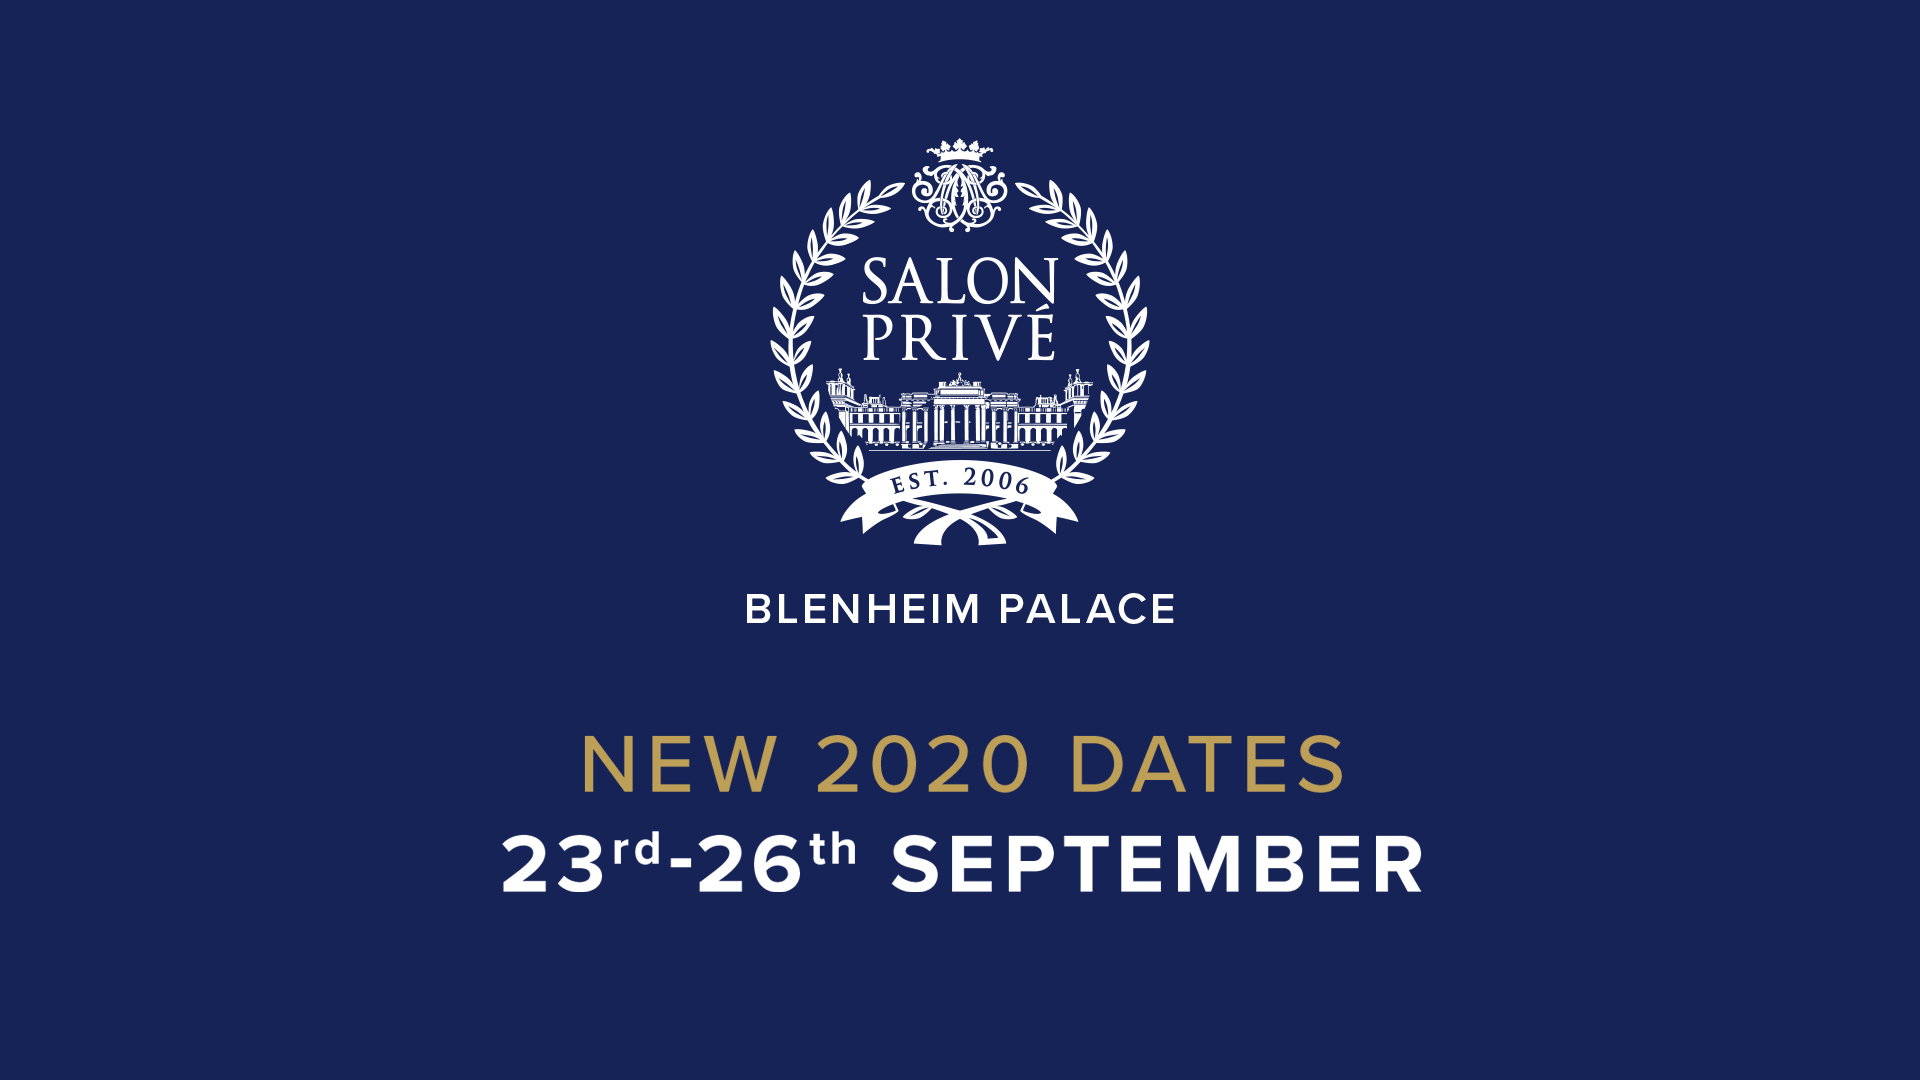 Salon Prive 2020